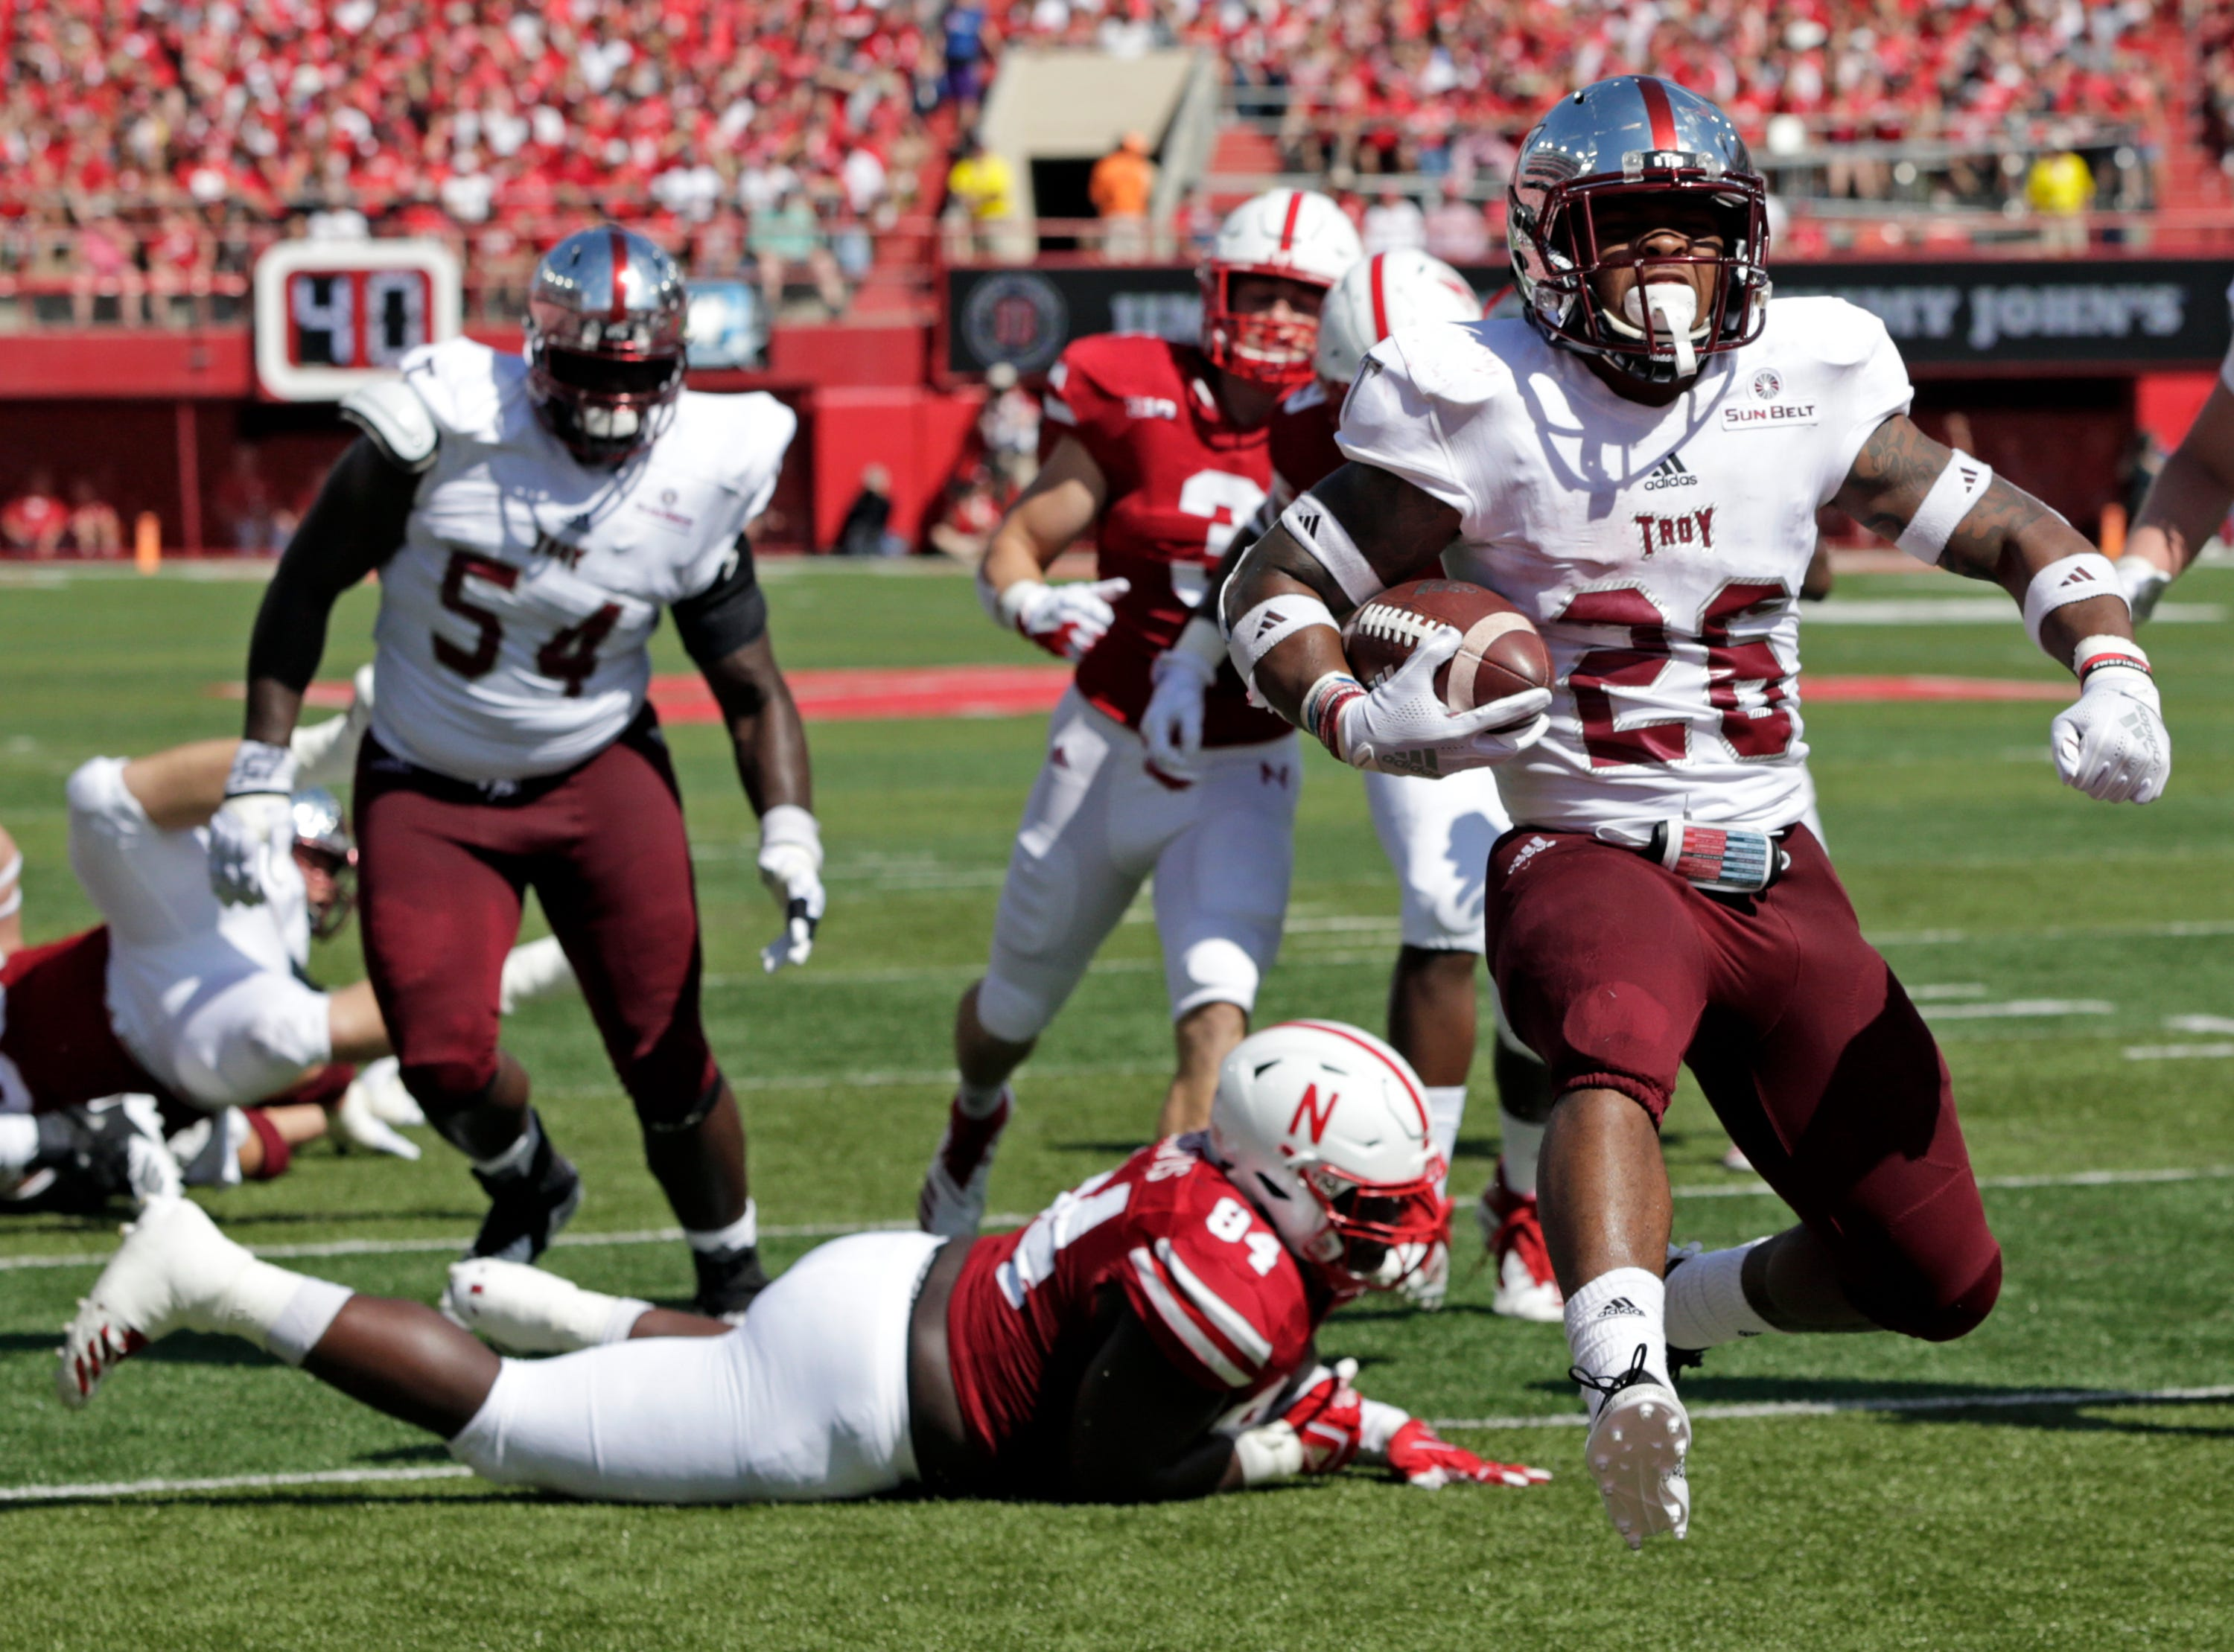 Troy running back B.J. Smith (26) runs into the end zone past Nebraska defensive lineman Khalil Davis (94) during the first half of an NCAA college football game in Lincoln, Neb., Saturday, Sept. 15, 2018. (AP Photo/Nati Harnik)